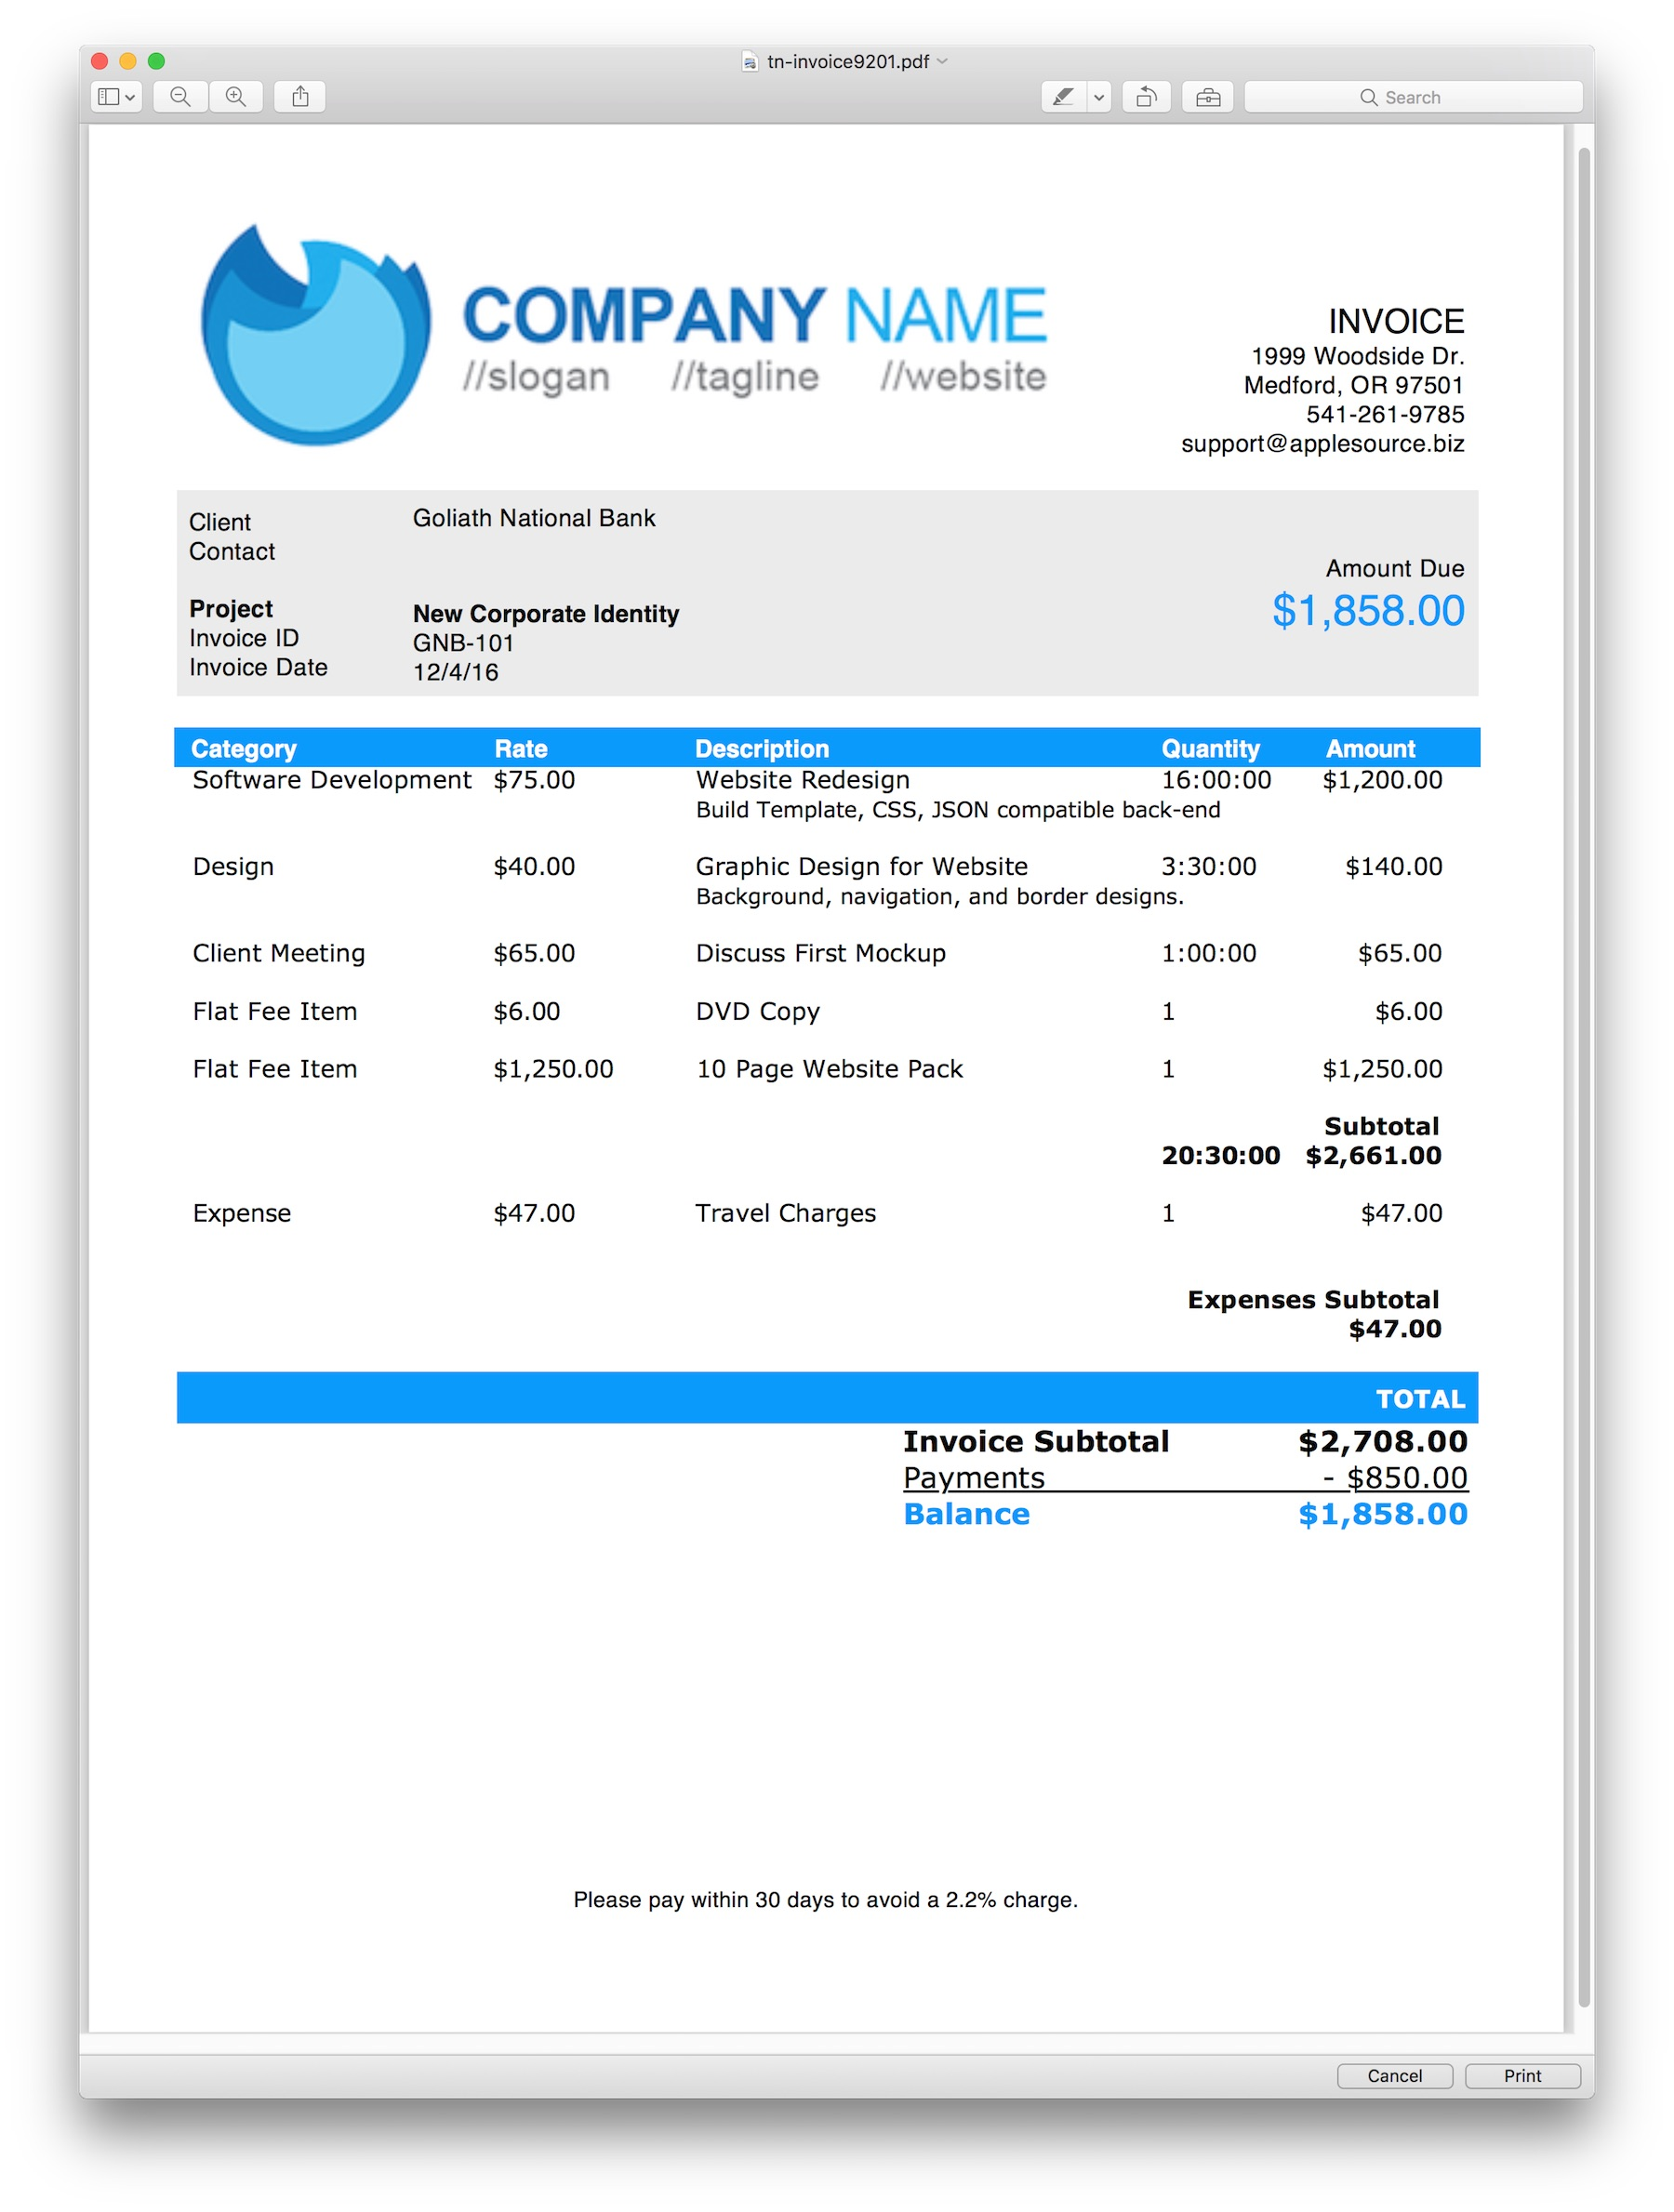 AppleSource Software TimeNet Invoice Templates Time Tracking - Template for invoicing